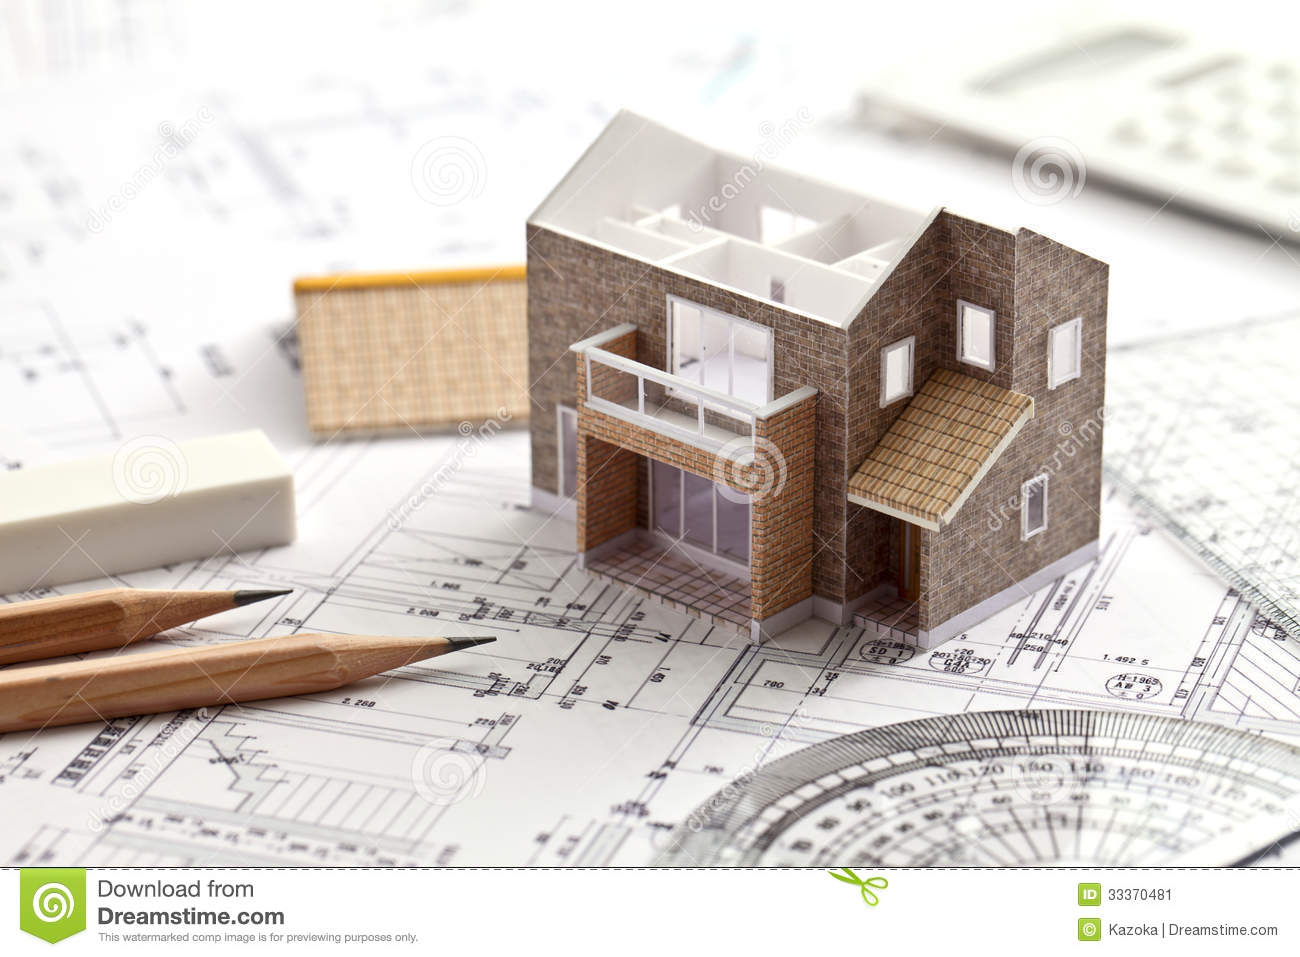 house design drawing stock image image of object paper 33370481 - Draw Own House Plans